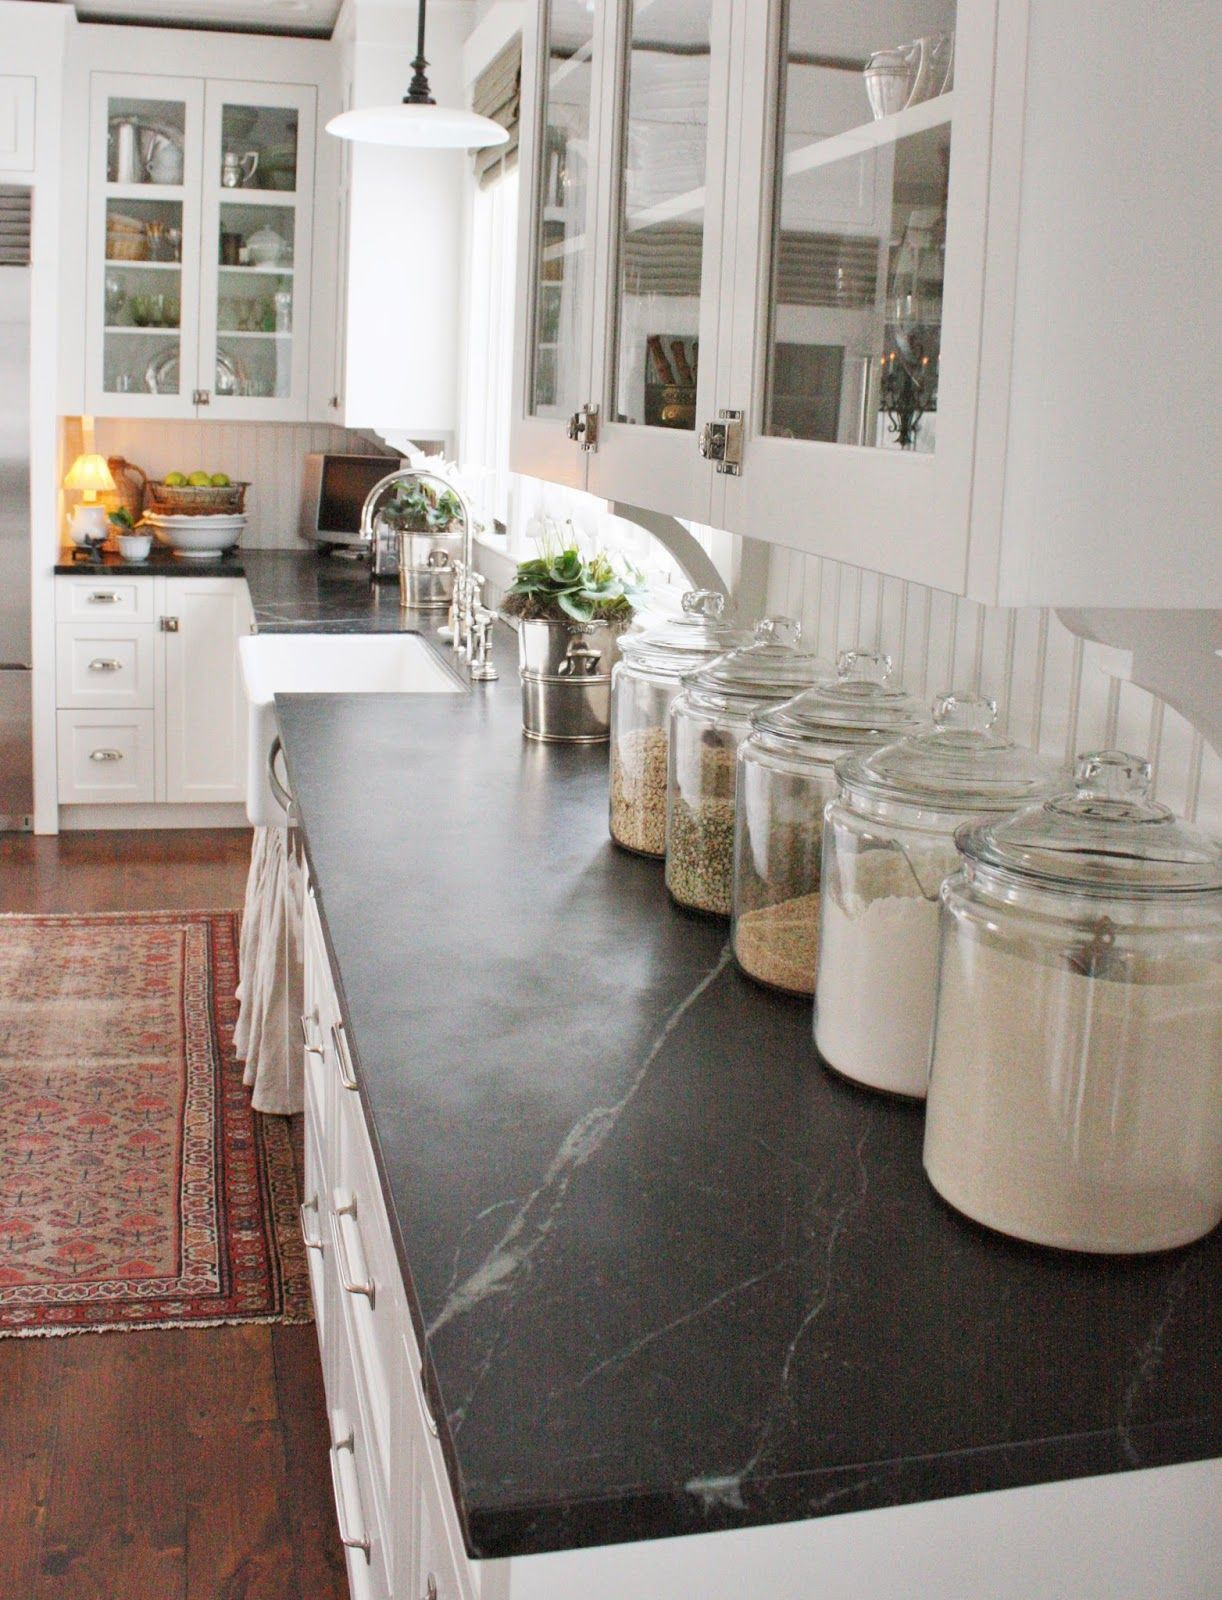 the 50 best tips to get your home super organized farmhouse if your kitchen lacks storage your counter will feel the brunt of the problem